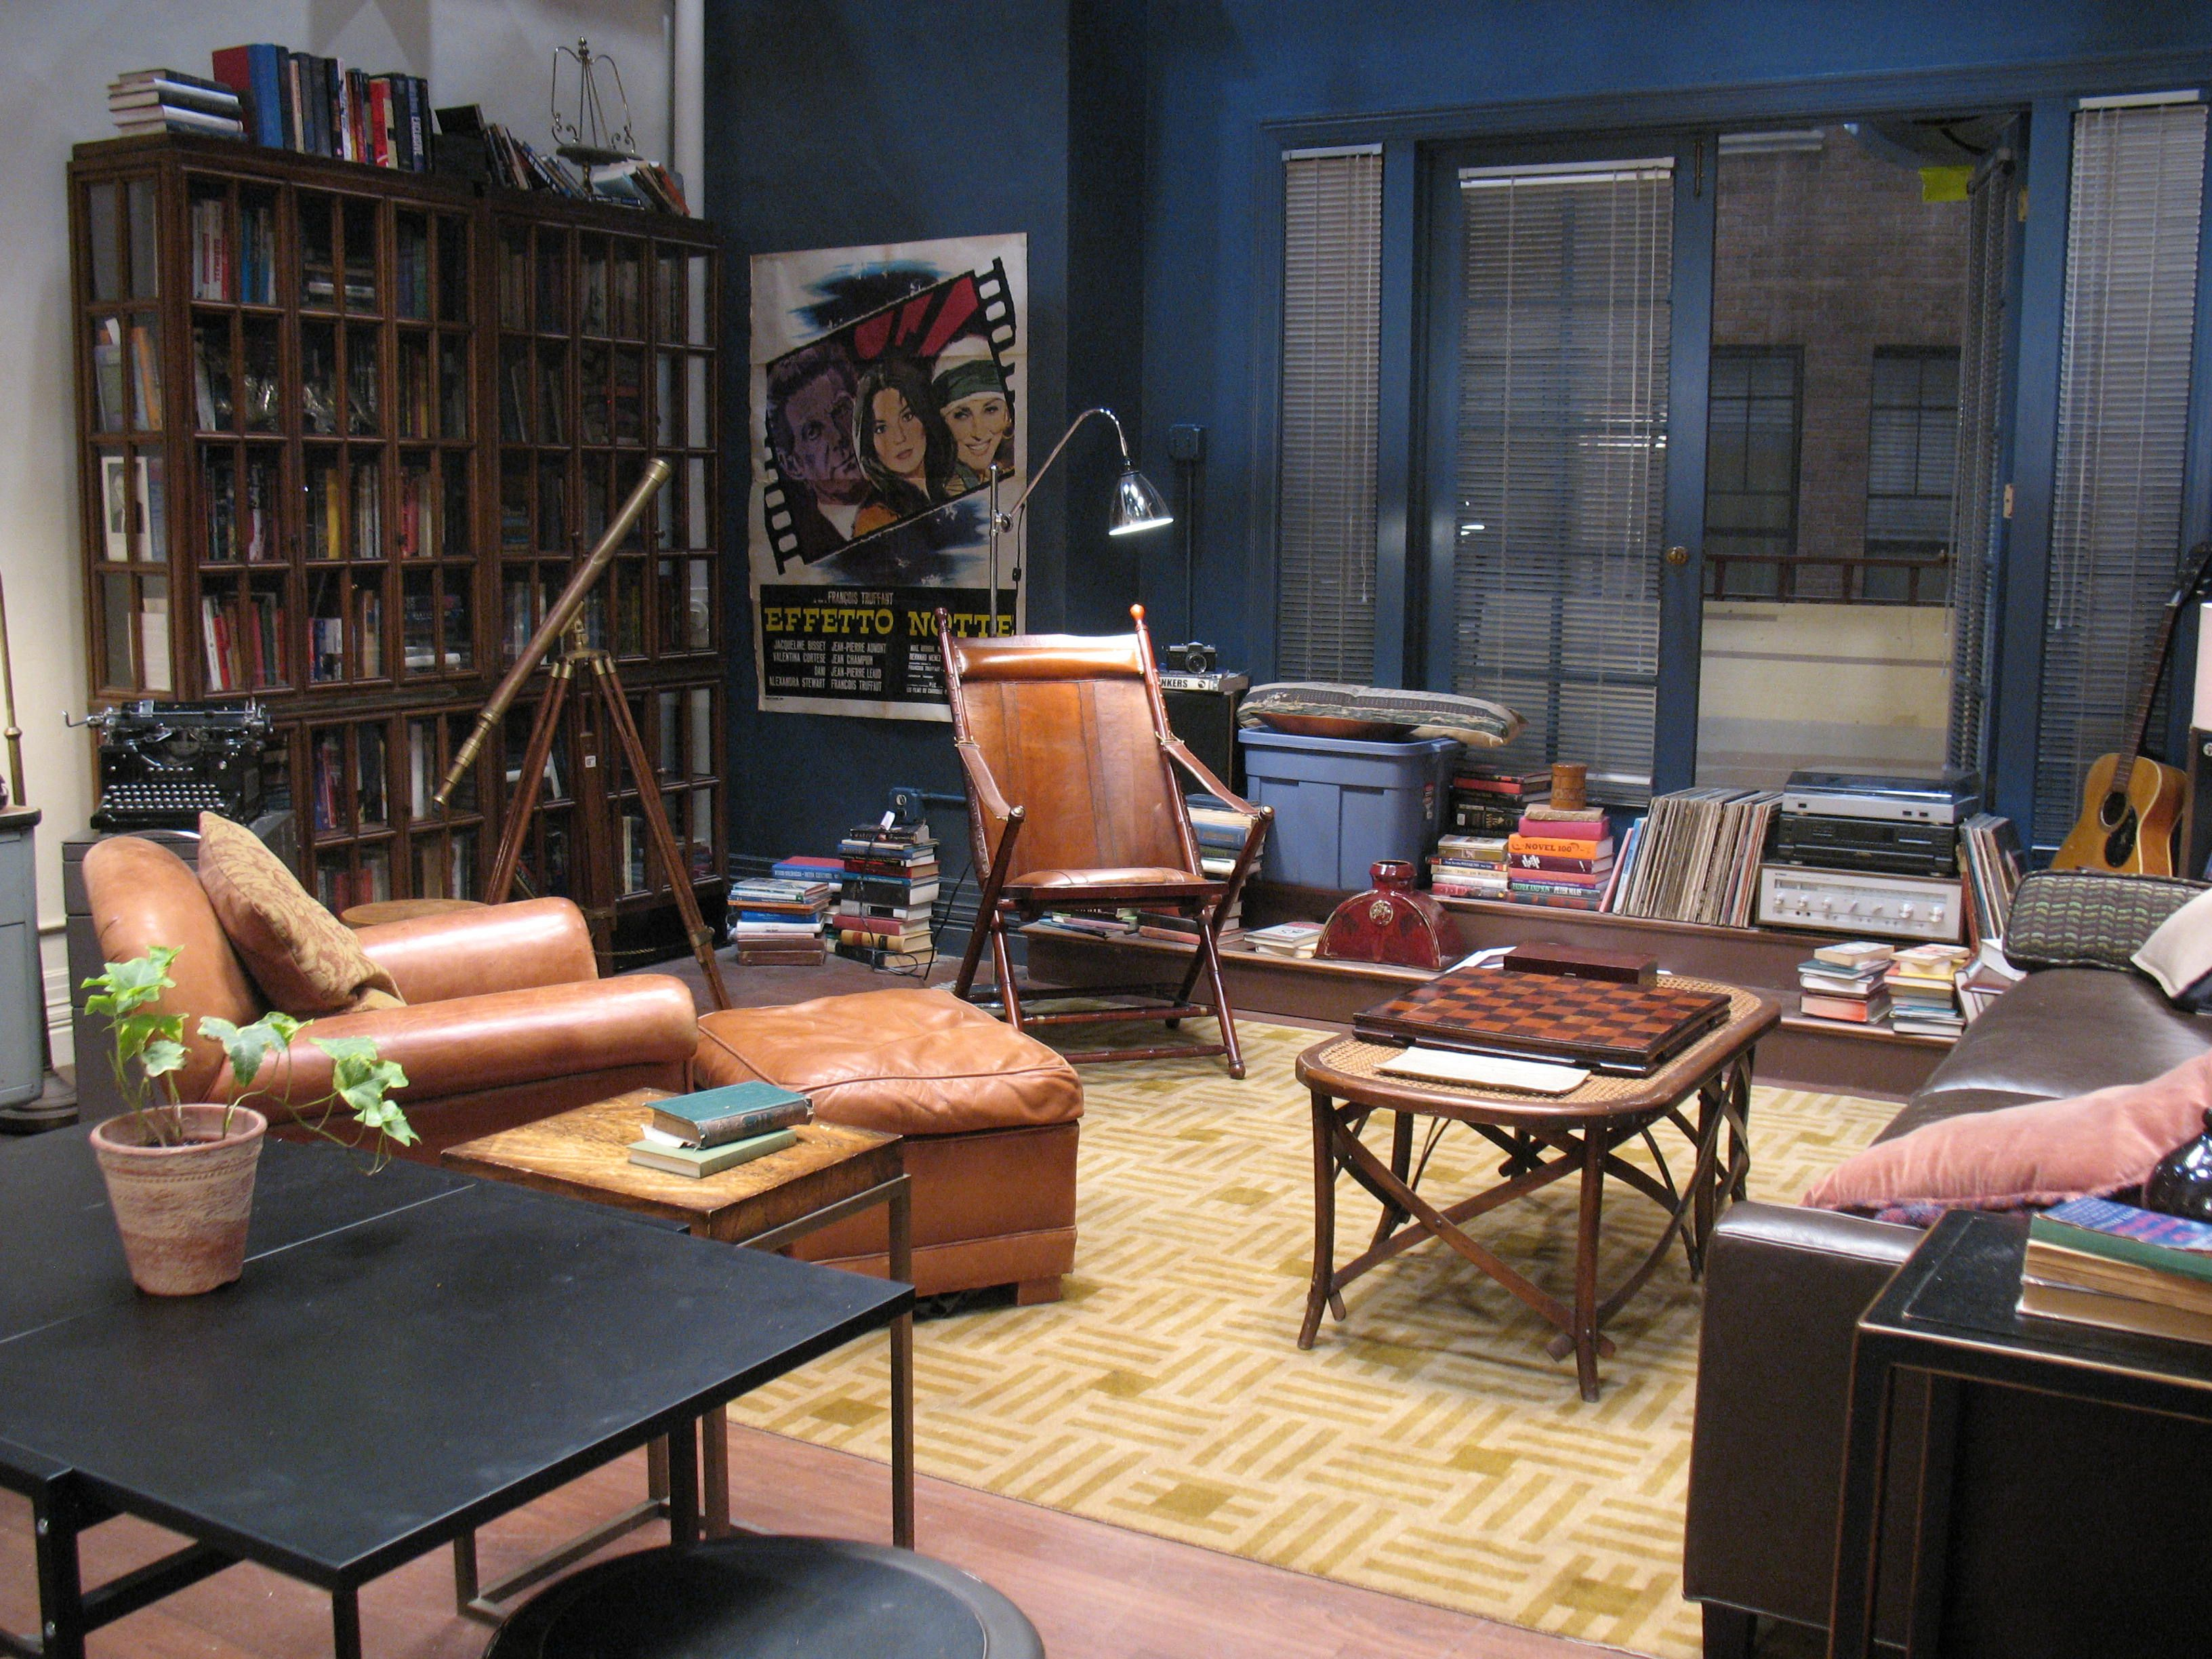 Related spencer hastings living room hanna marin kitchen - We Love Ezra S Apartment Pretty Little Liars